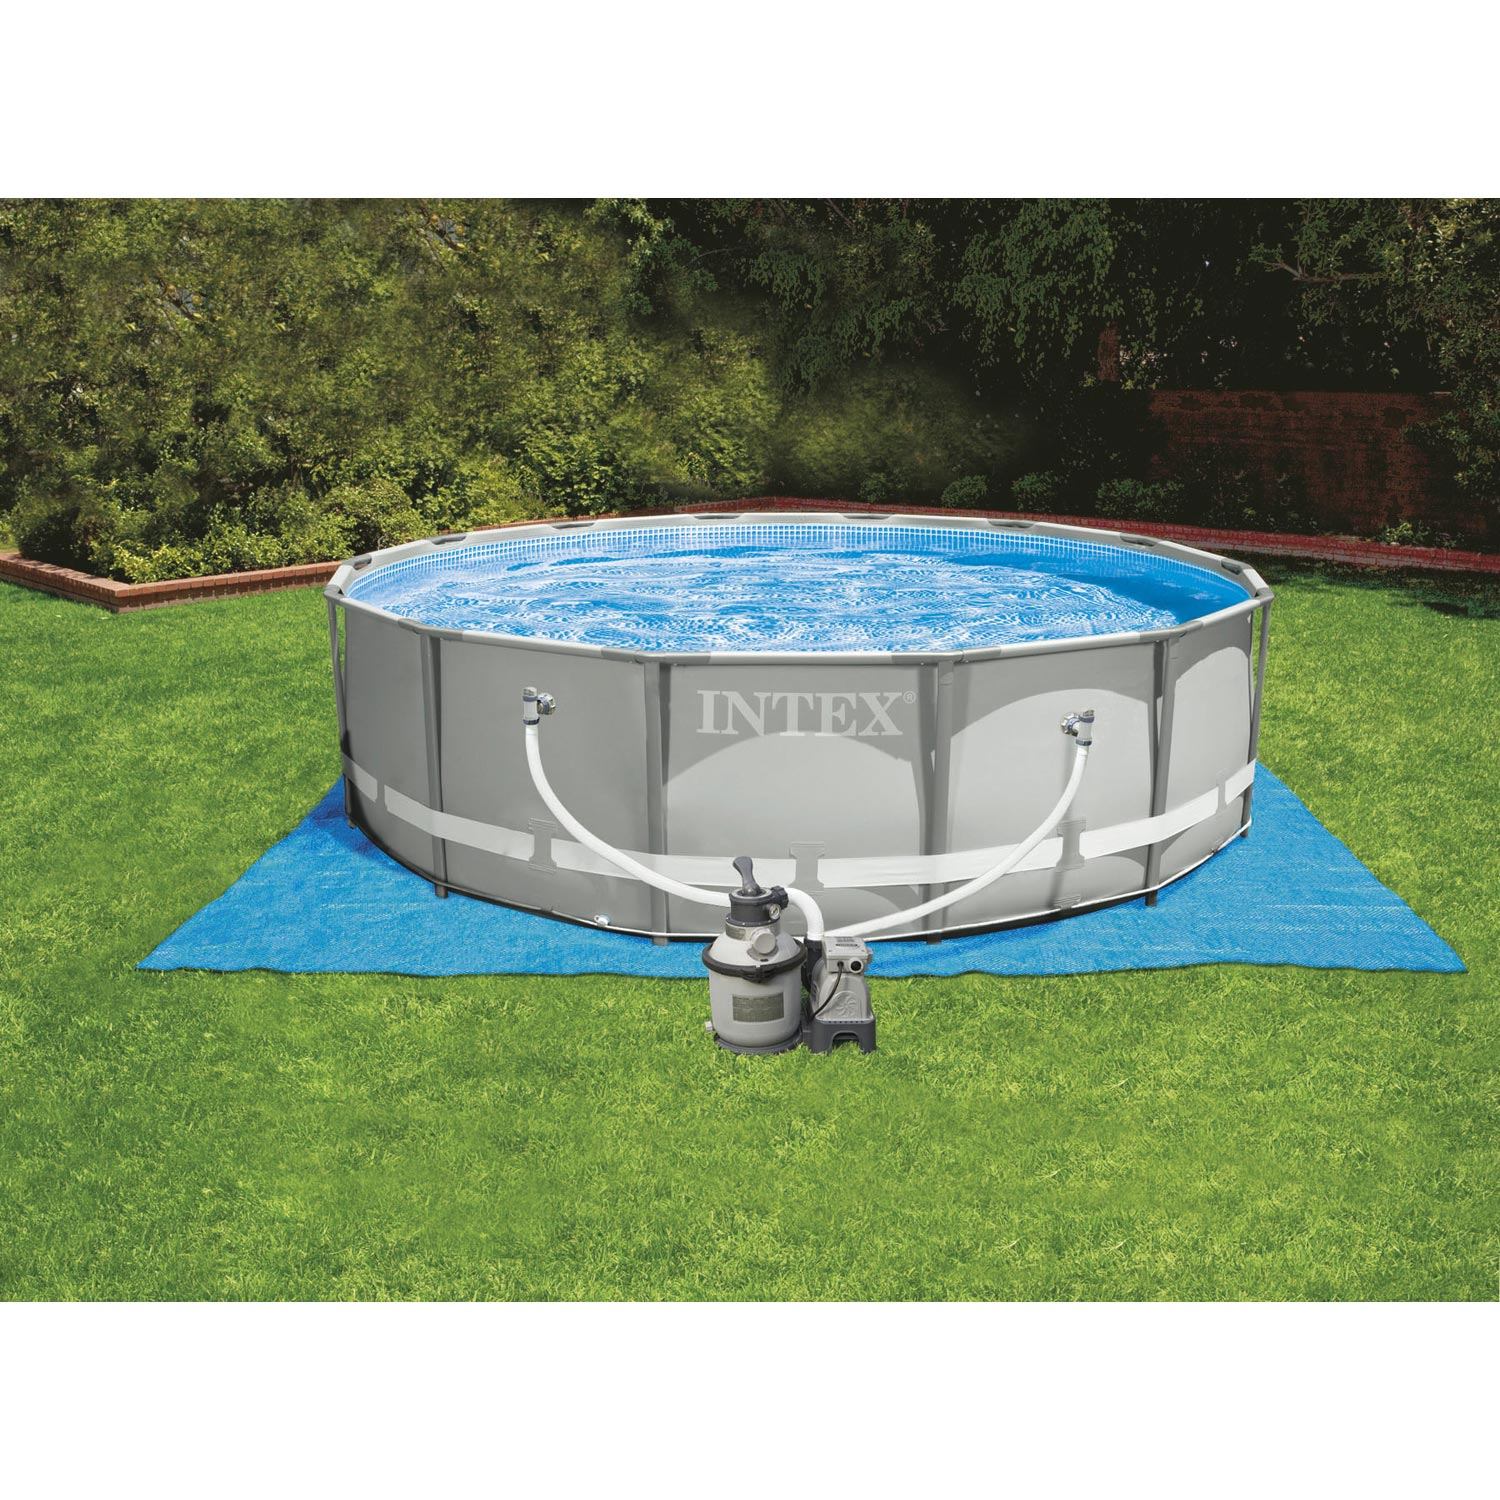 Piscine hors sol autoportante tubulaire ultra frame intex for Piscine dans le sol